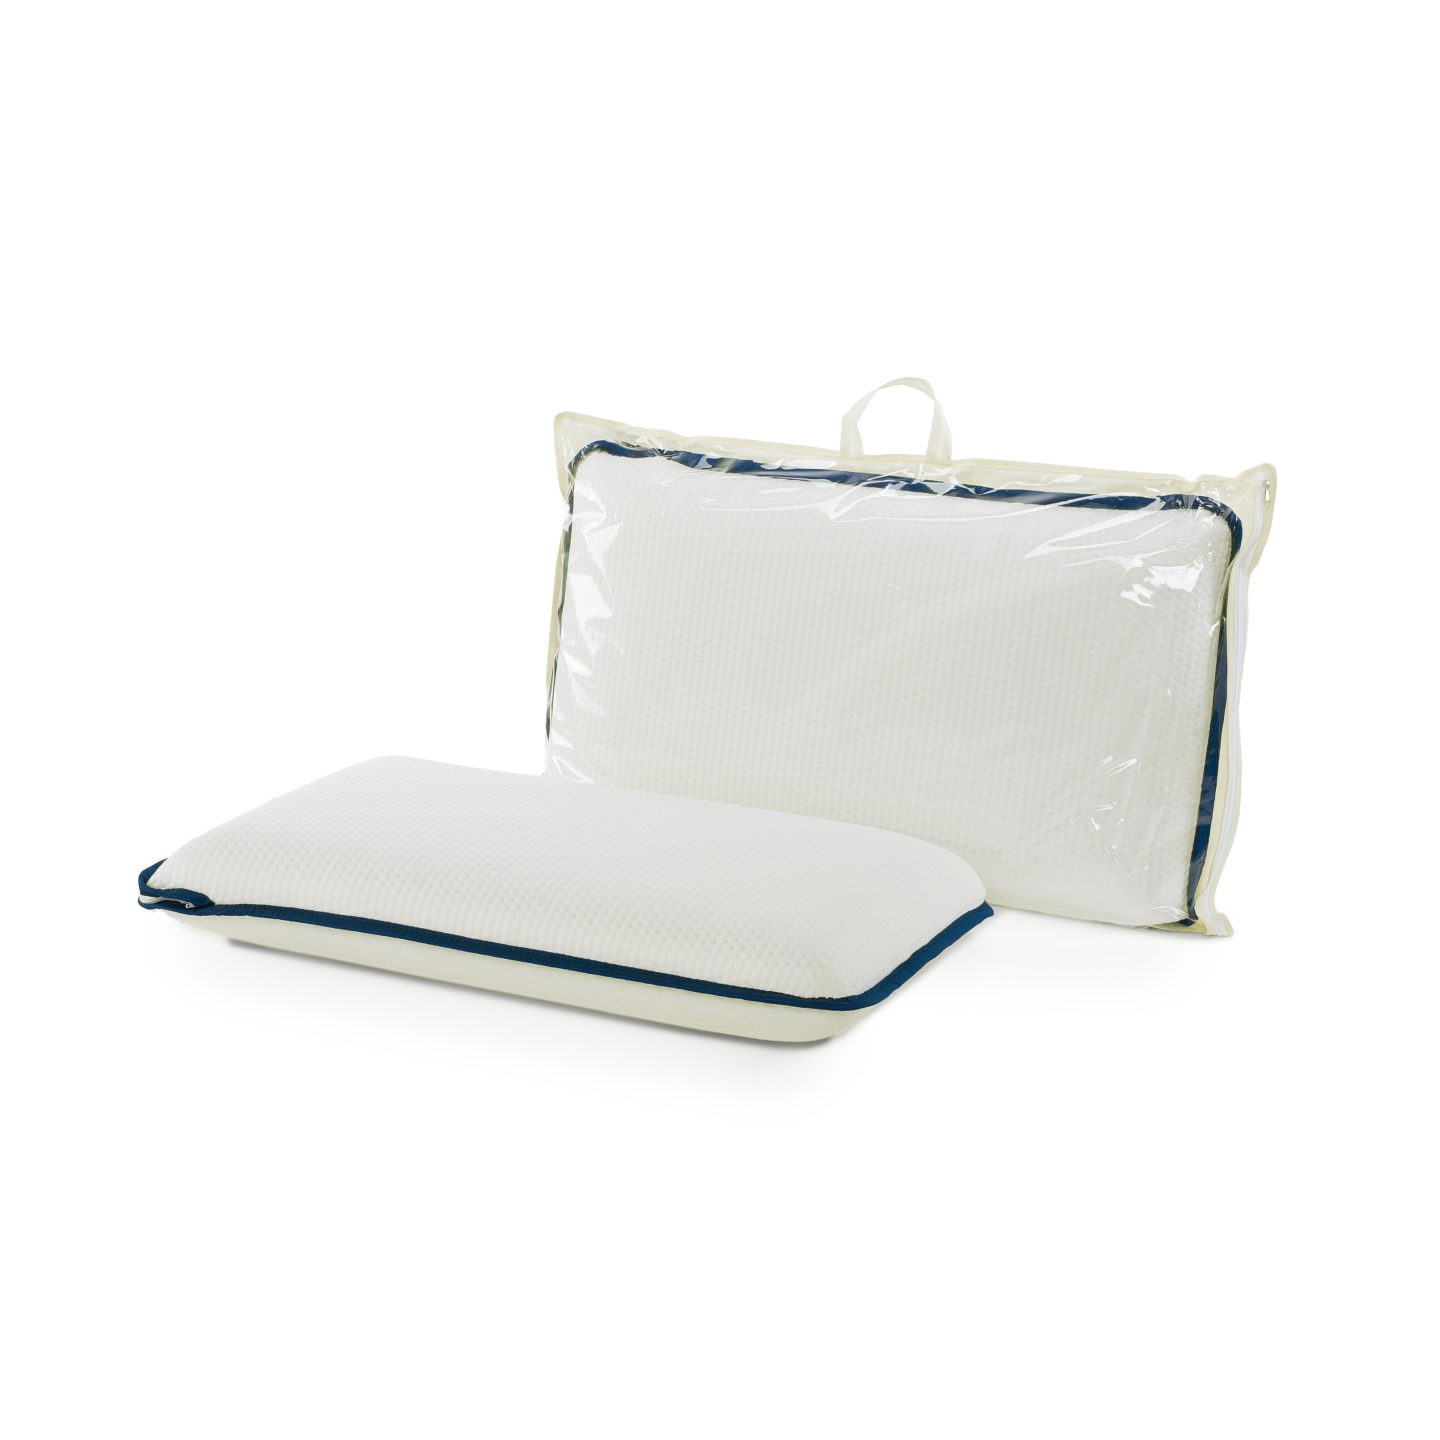 Cuscino in memory foam Pillow rivestimento e bordo